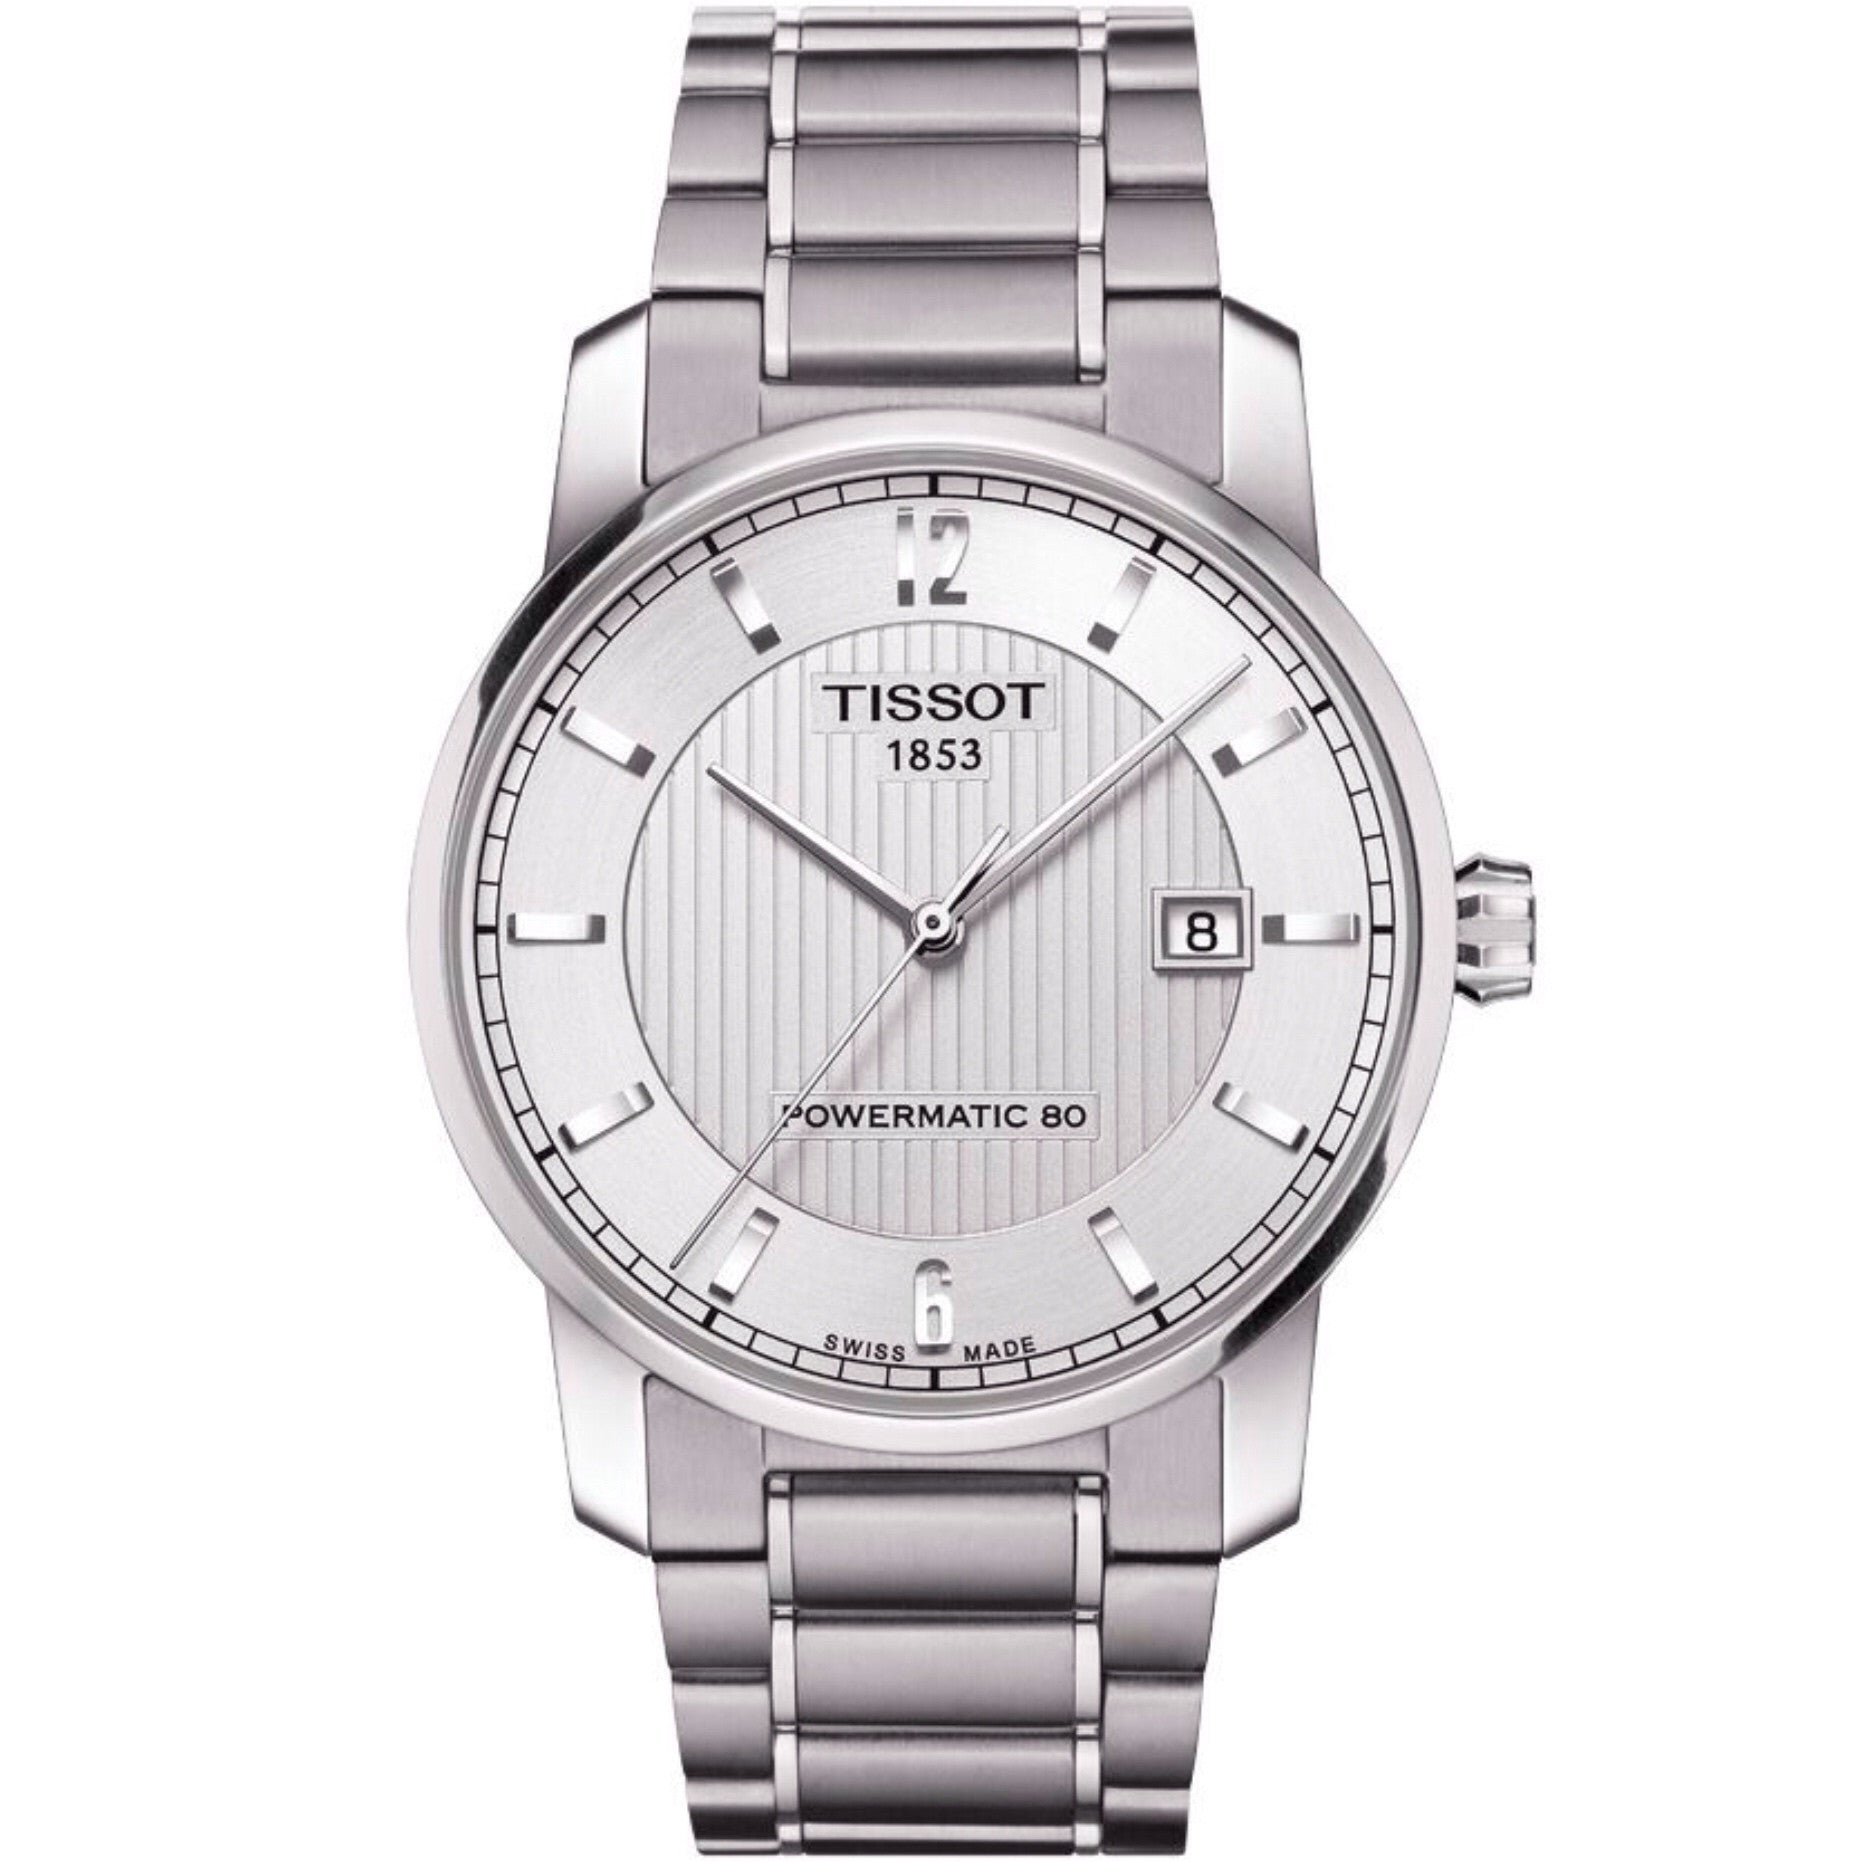 Tissot Titanium Men's Automatic Silver Dial Watch with Titanium Bracelet